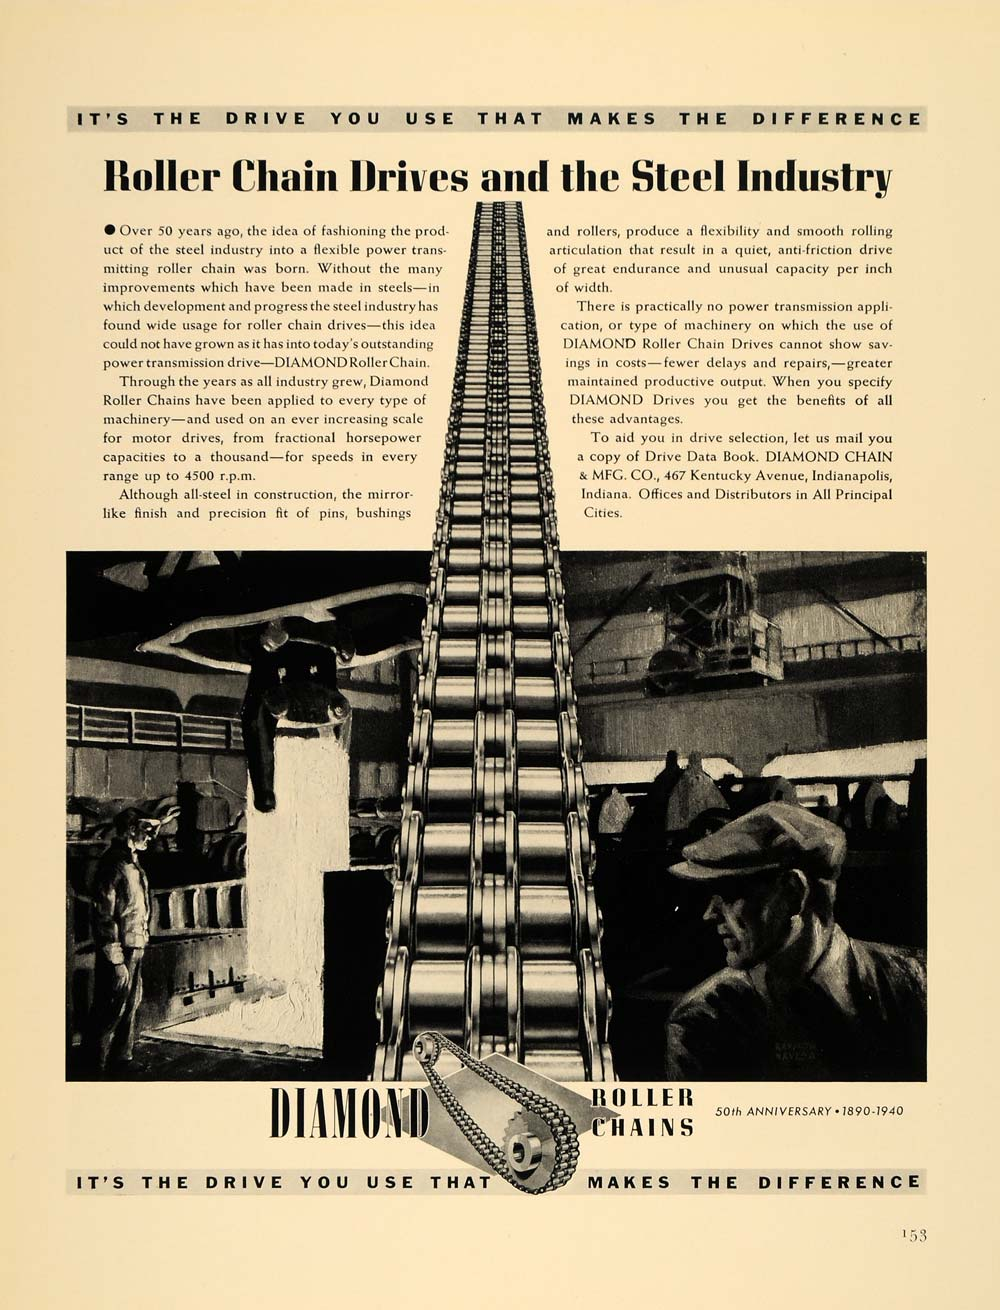 1940 Ad Diamond Roller Chain Manufacturing Illustration - ORIGINAL F4A